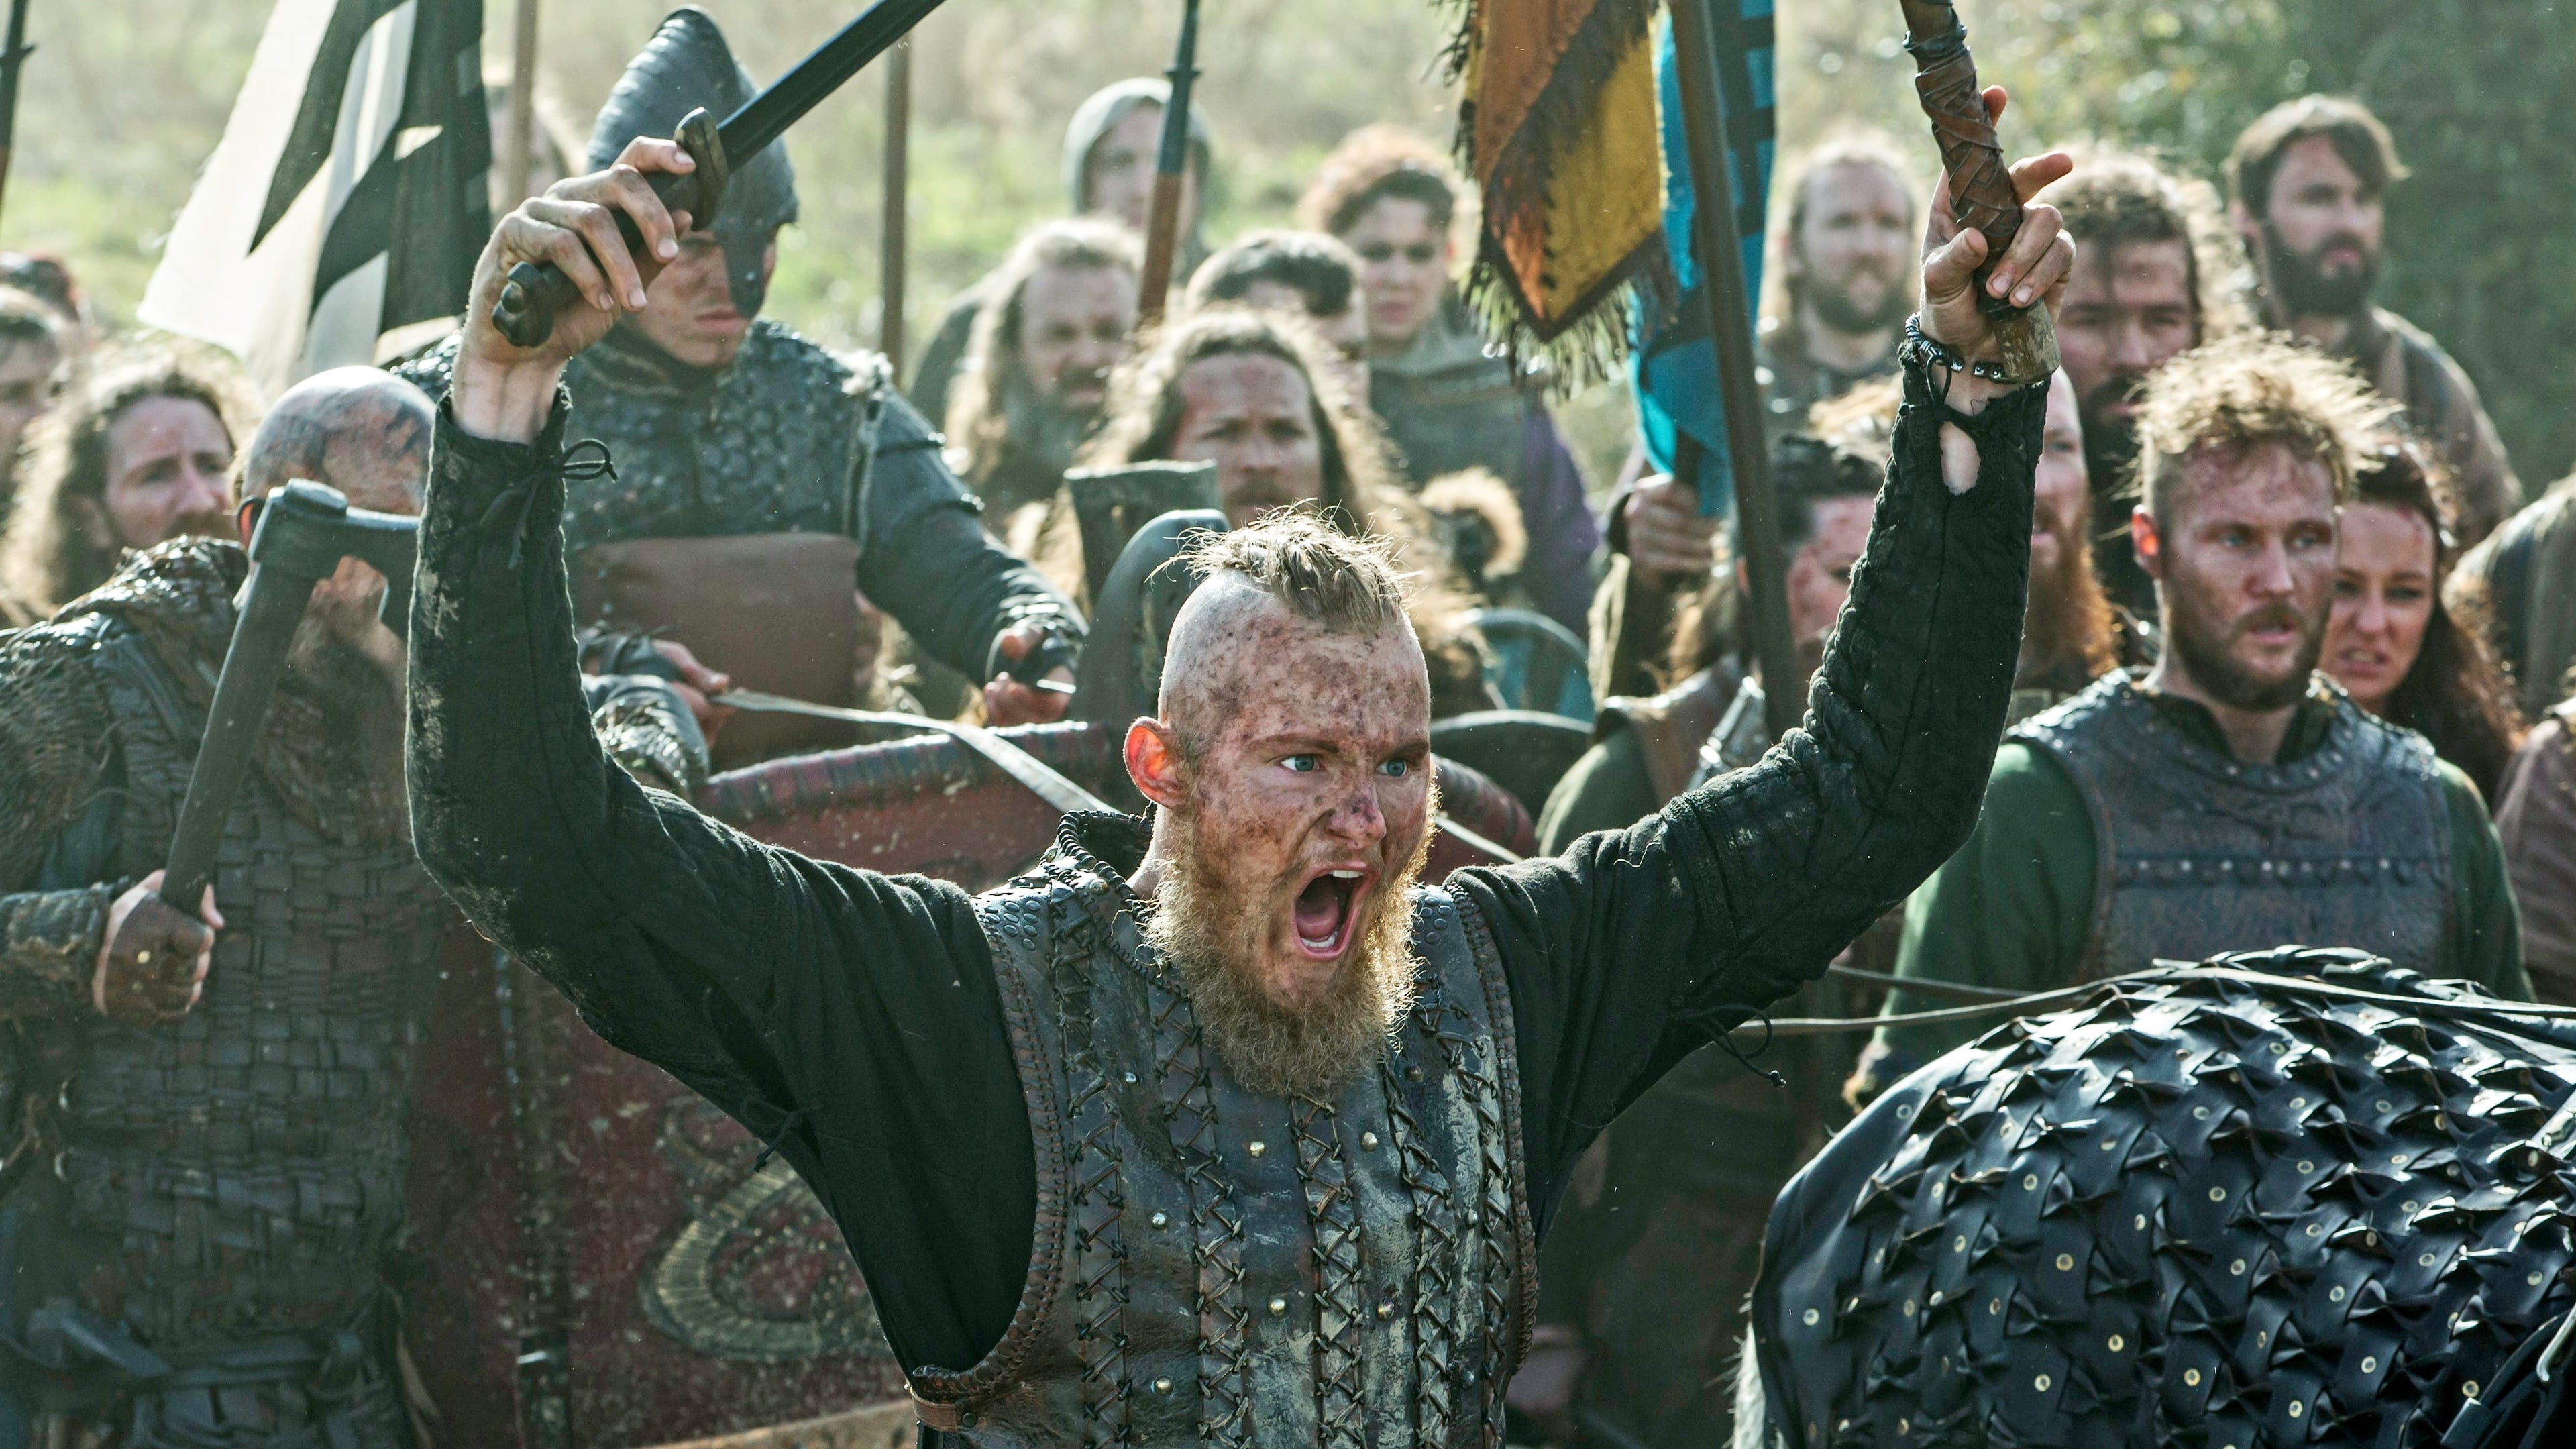 Vikings - Season 4 Episode 19 : On the Eve